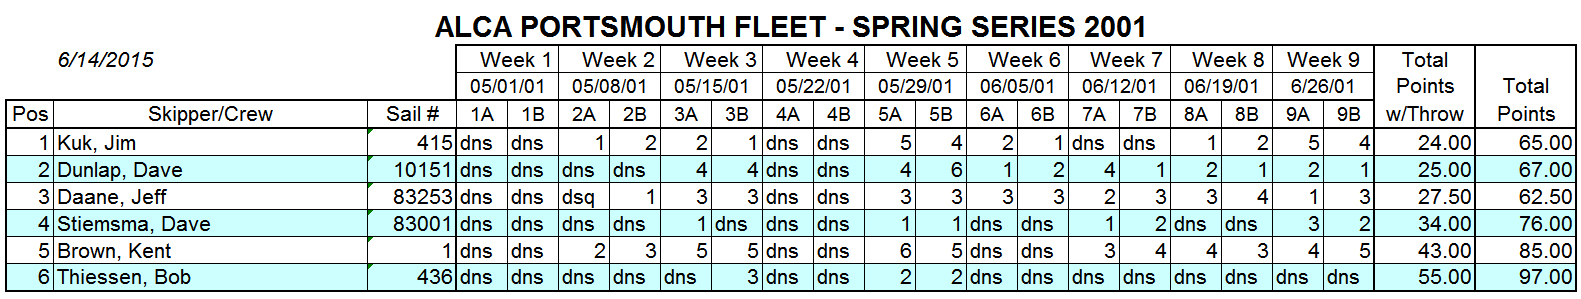 2001 Spring Portsmouth Fleet Results